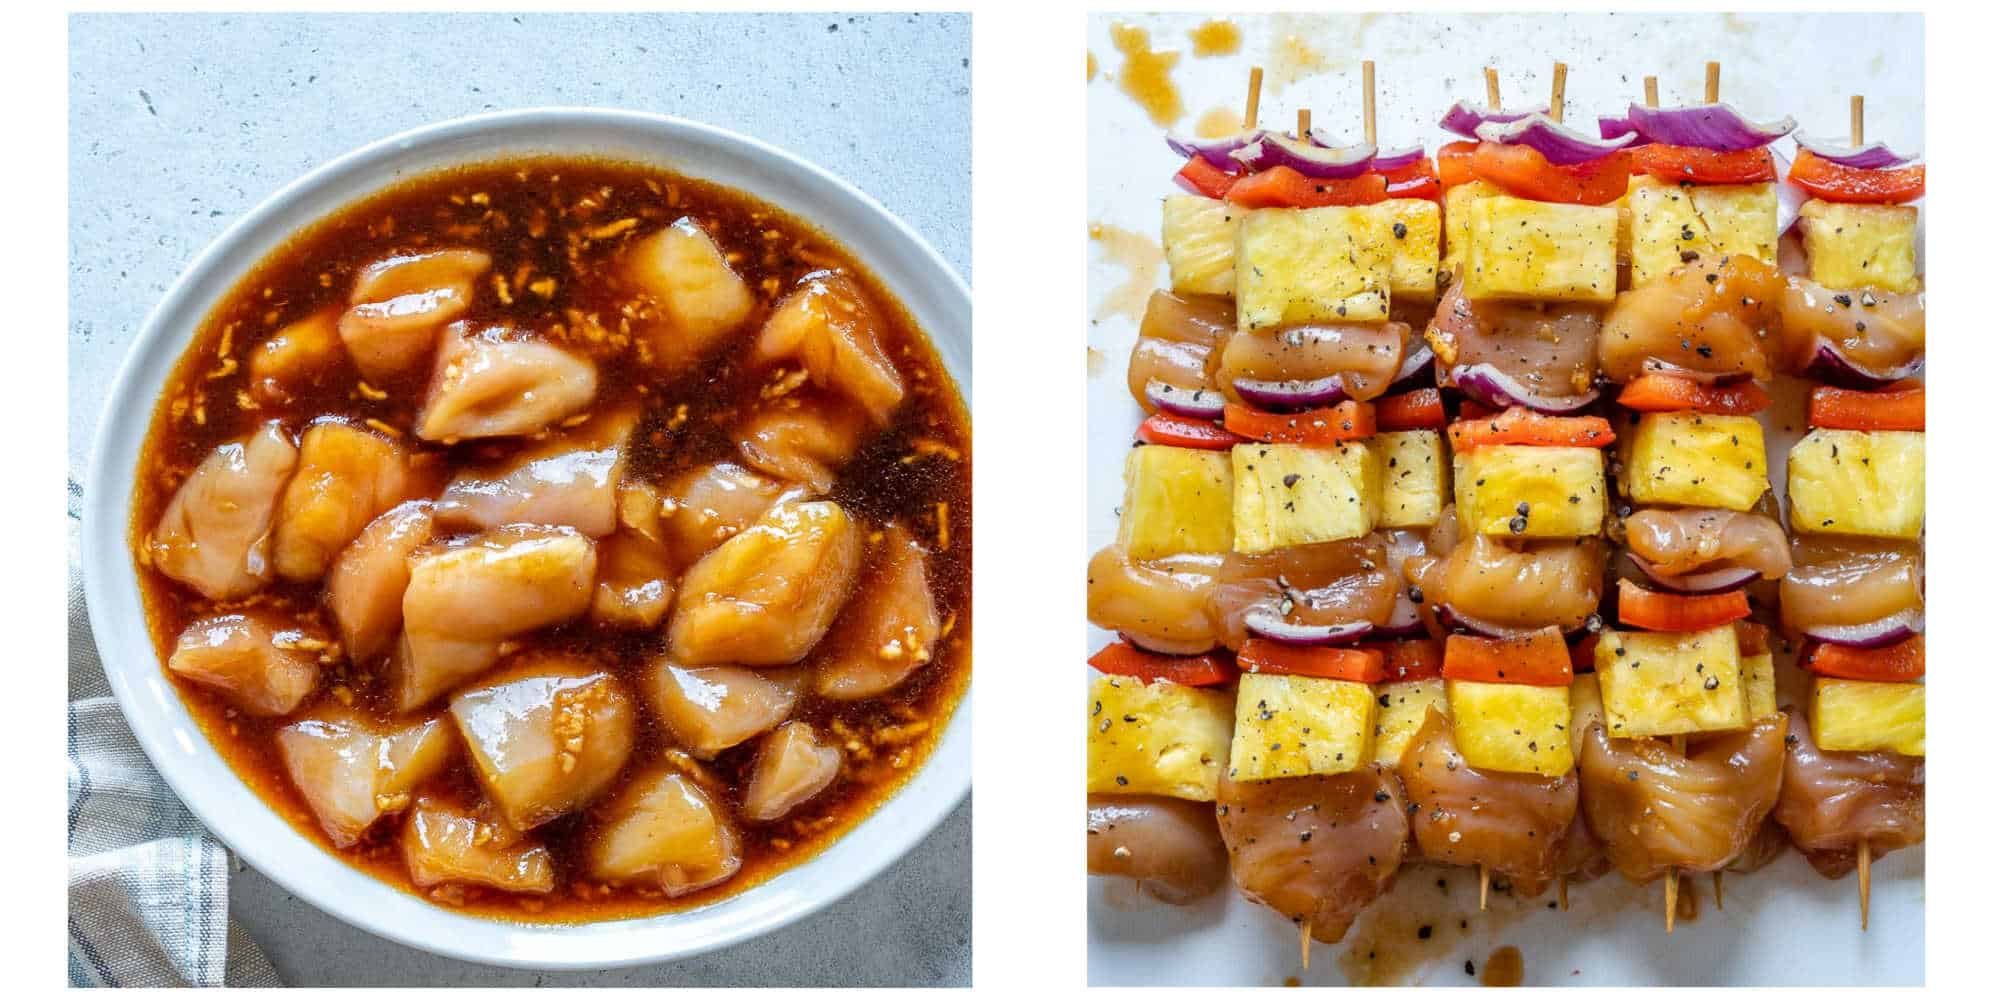 collage of marinated chicken in a bowl on the left and chicken skewers on the right